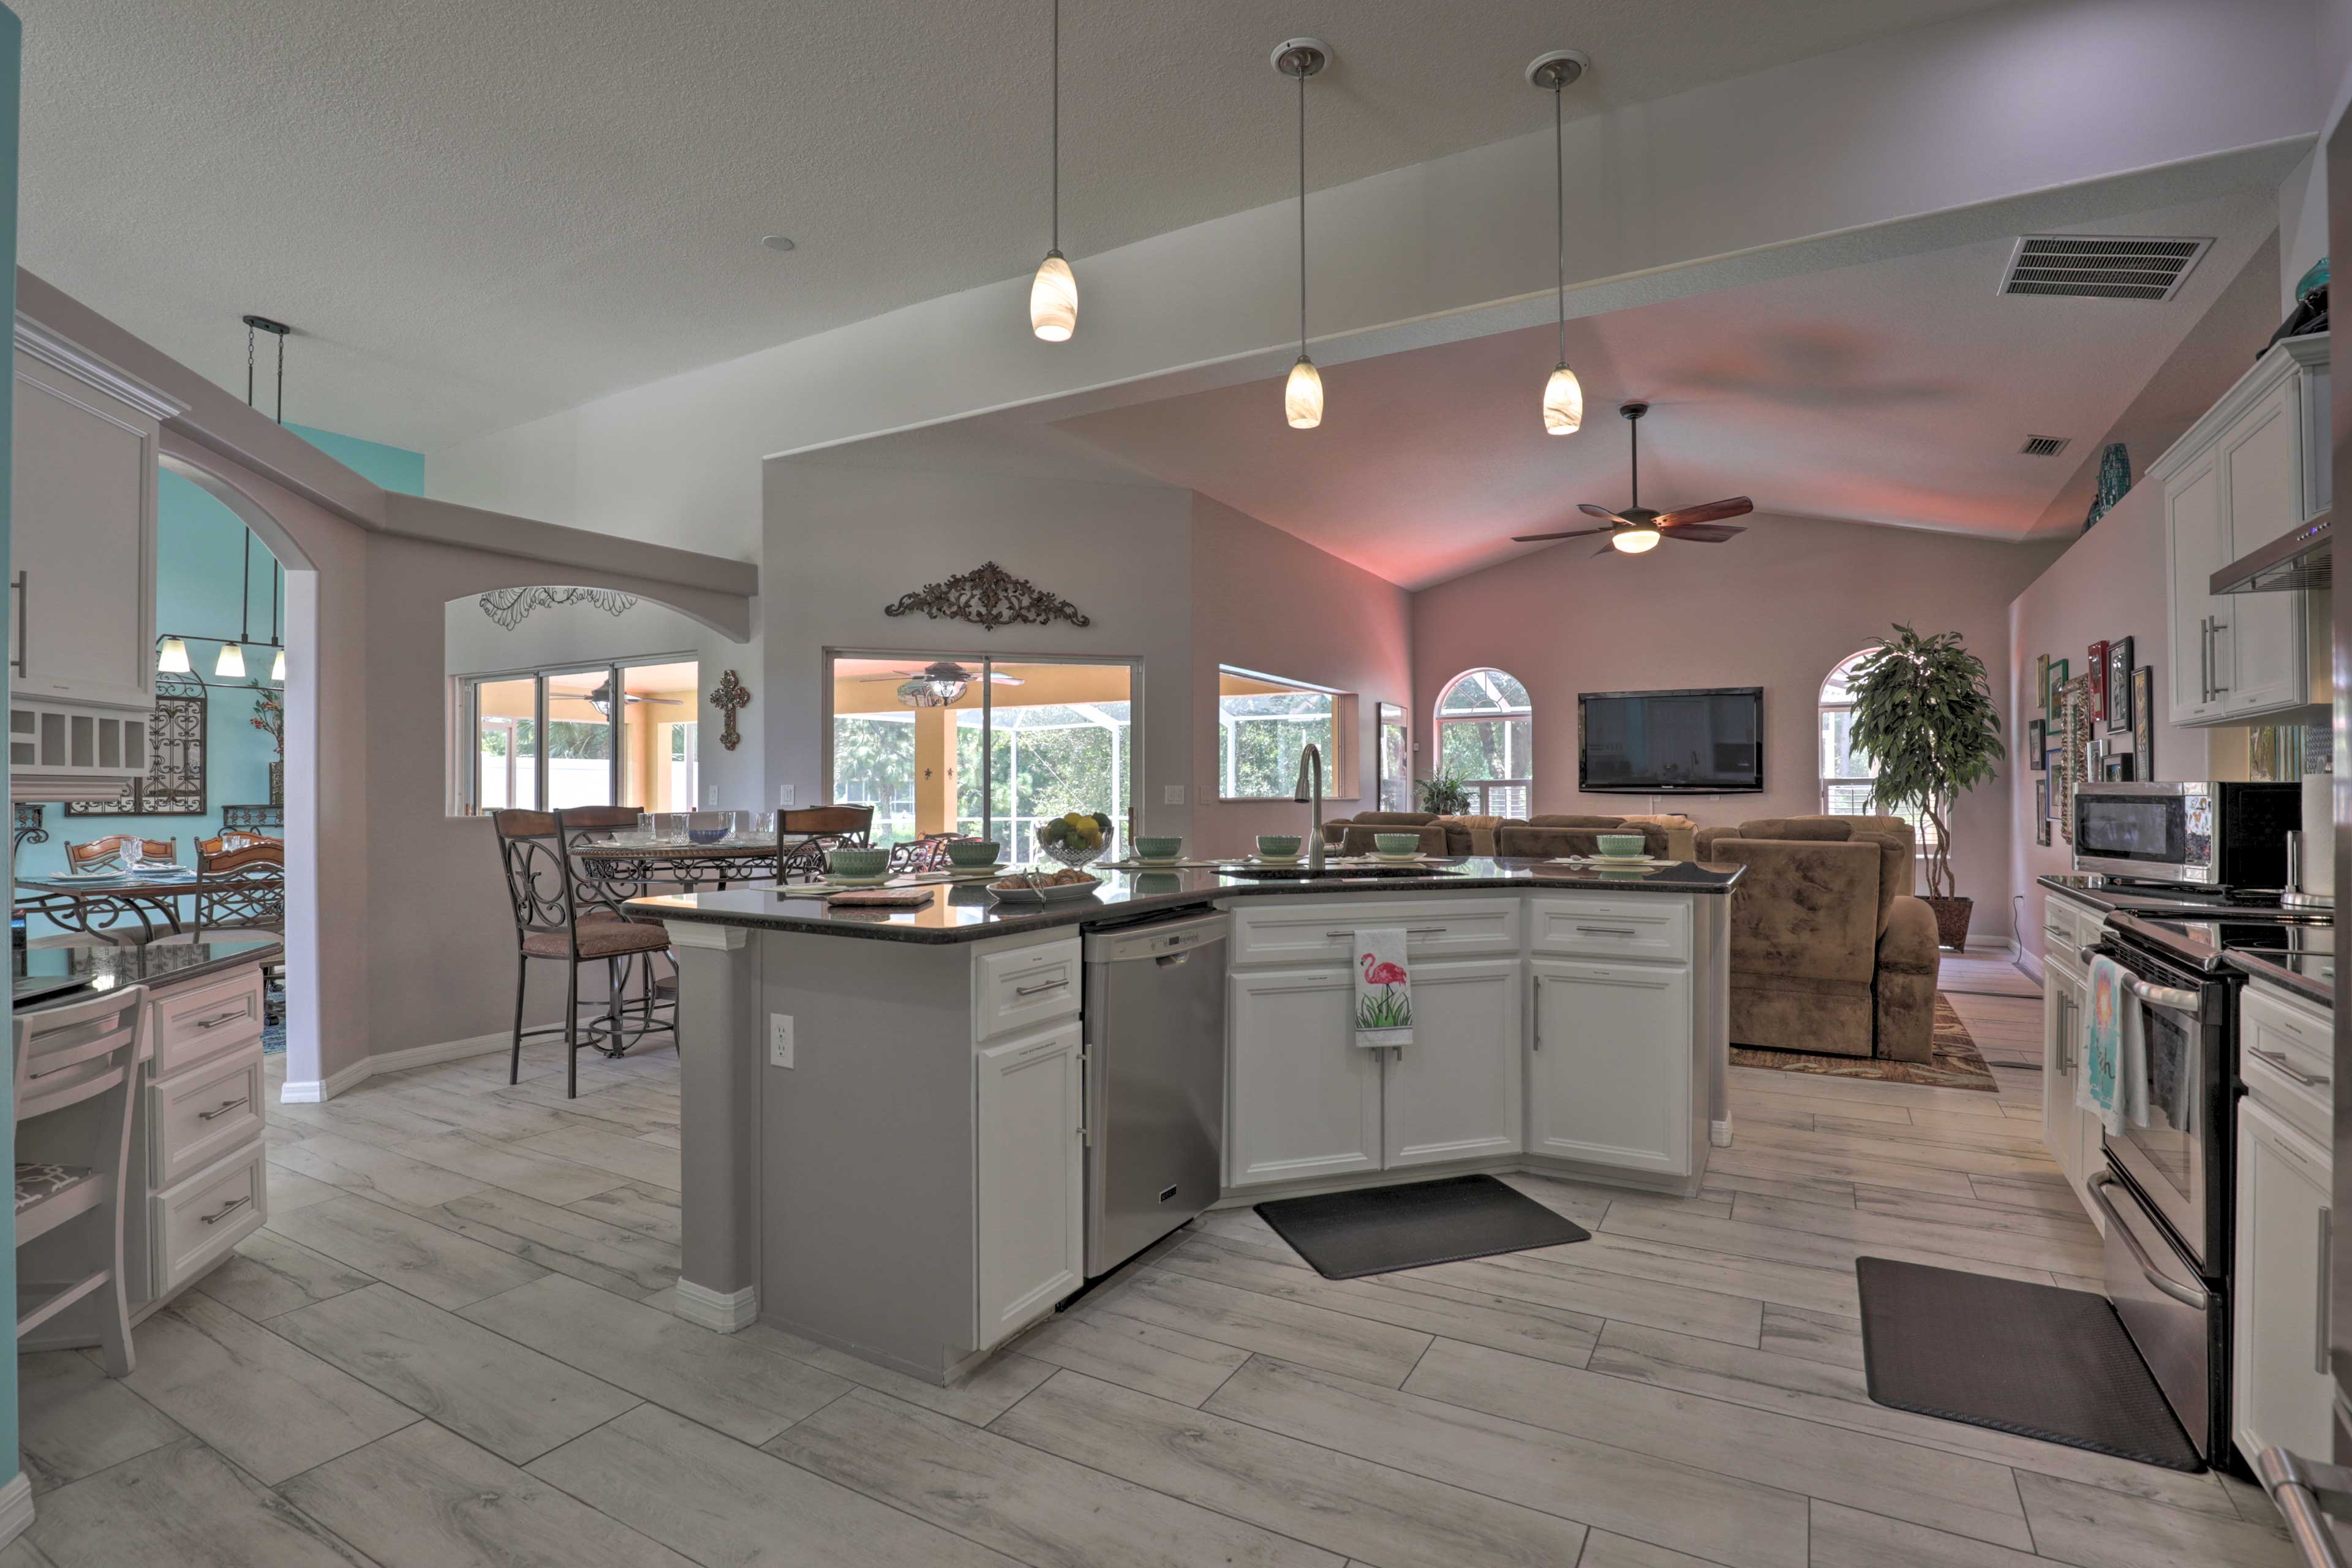 Whip up a 5-star meal in the fully equipped kitchen.